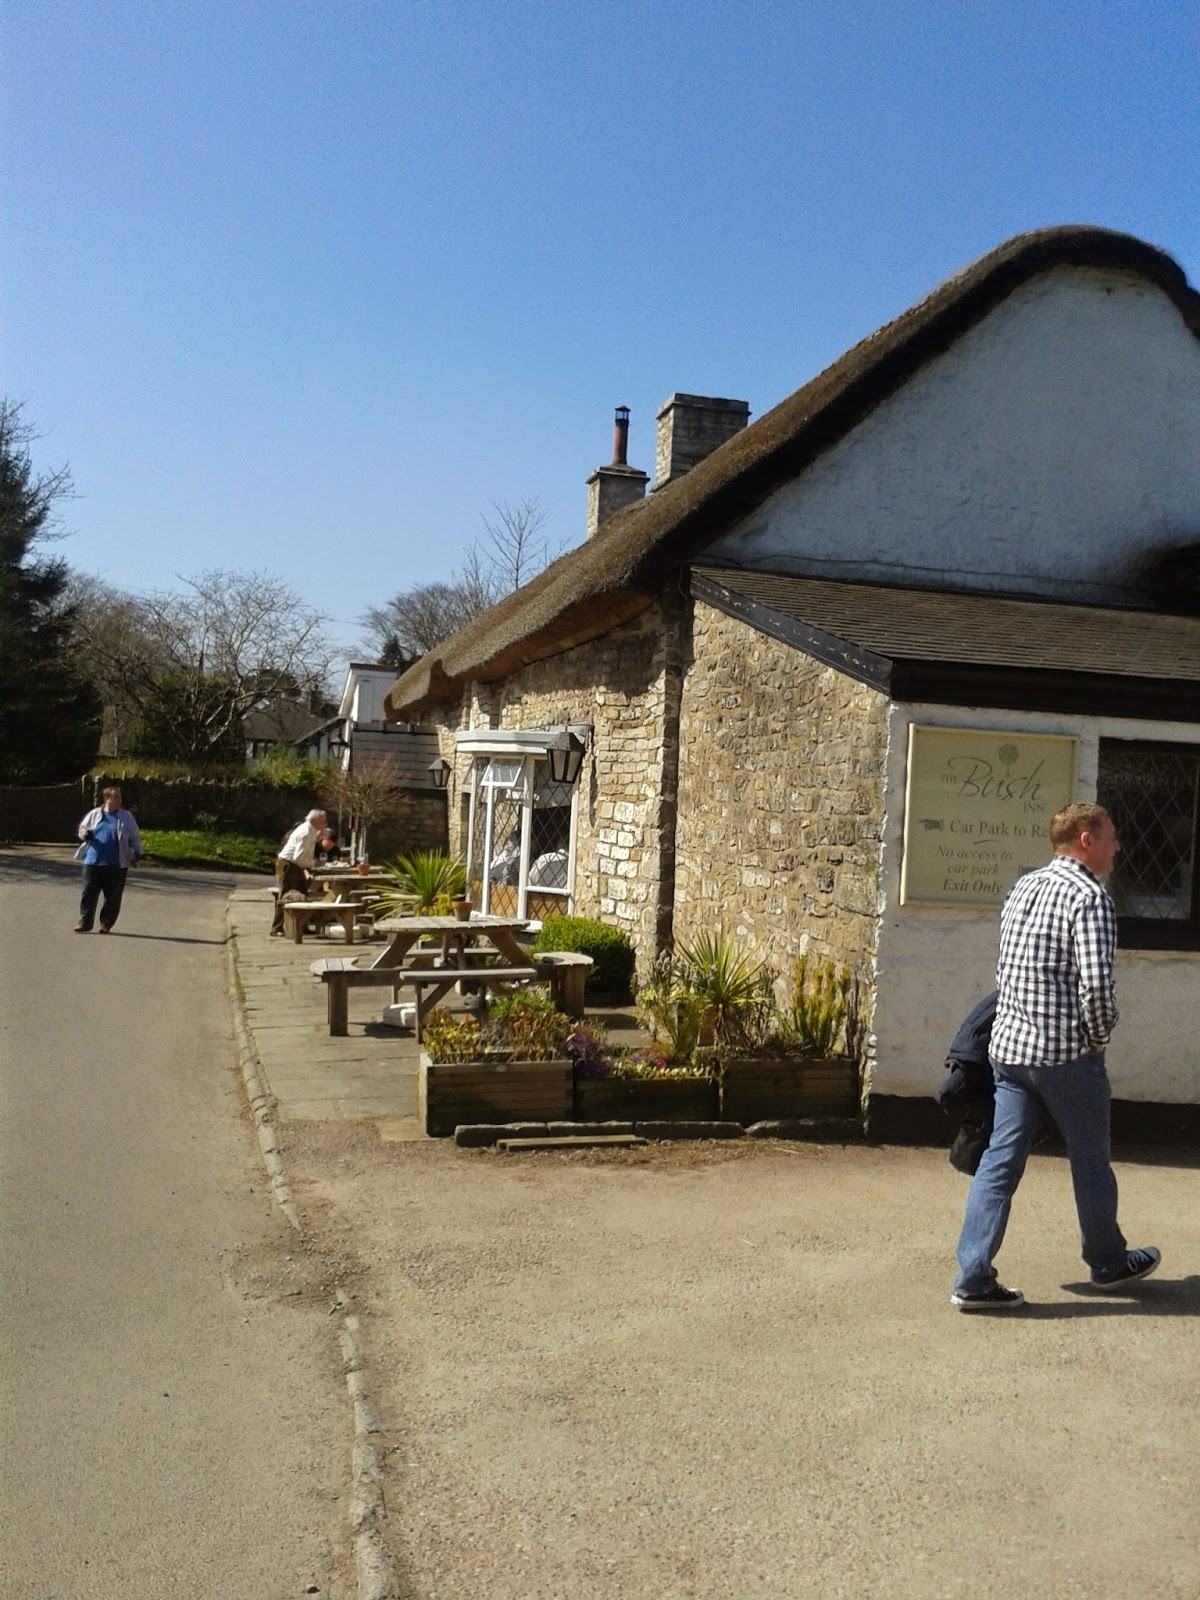 Outside the Bush Inn, St. Hilary